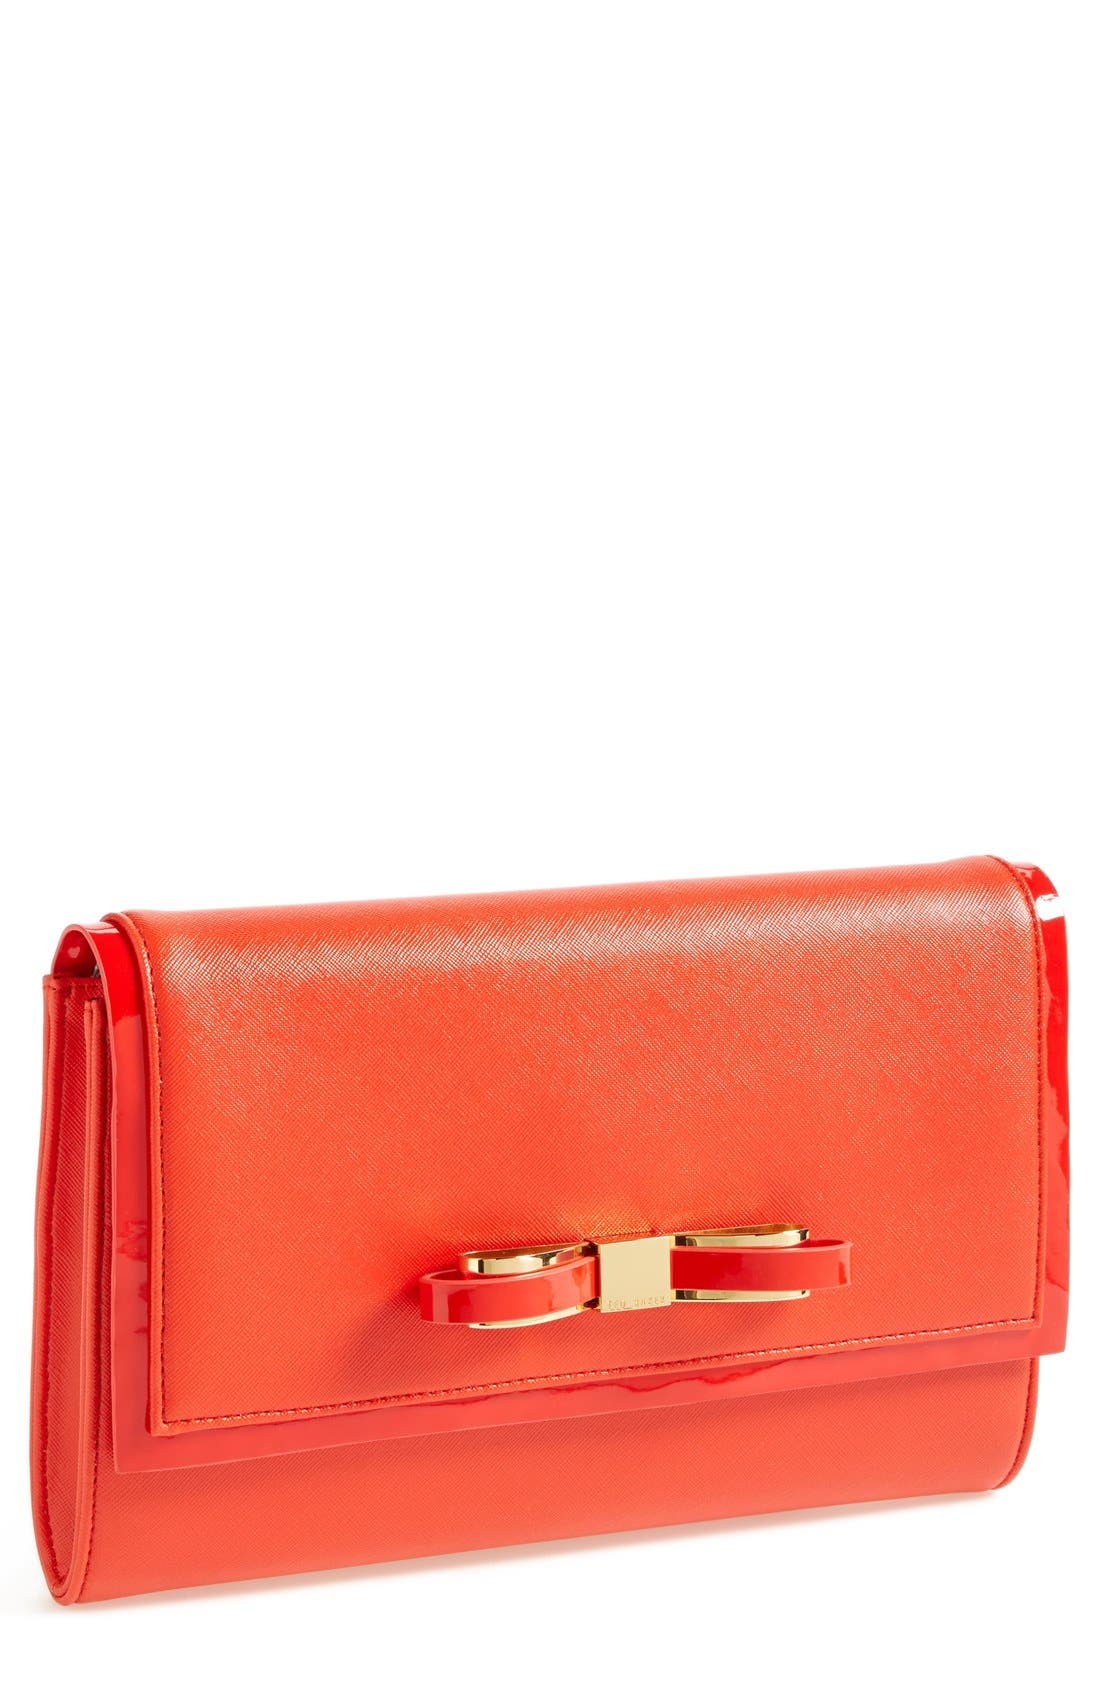 Alternate Image 1 Selected - Ted Baker London 'Bow' Clutch